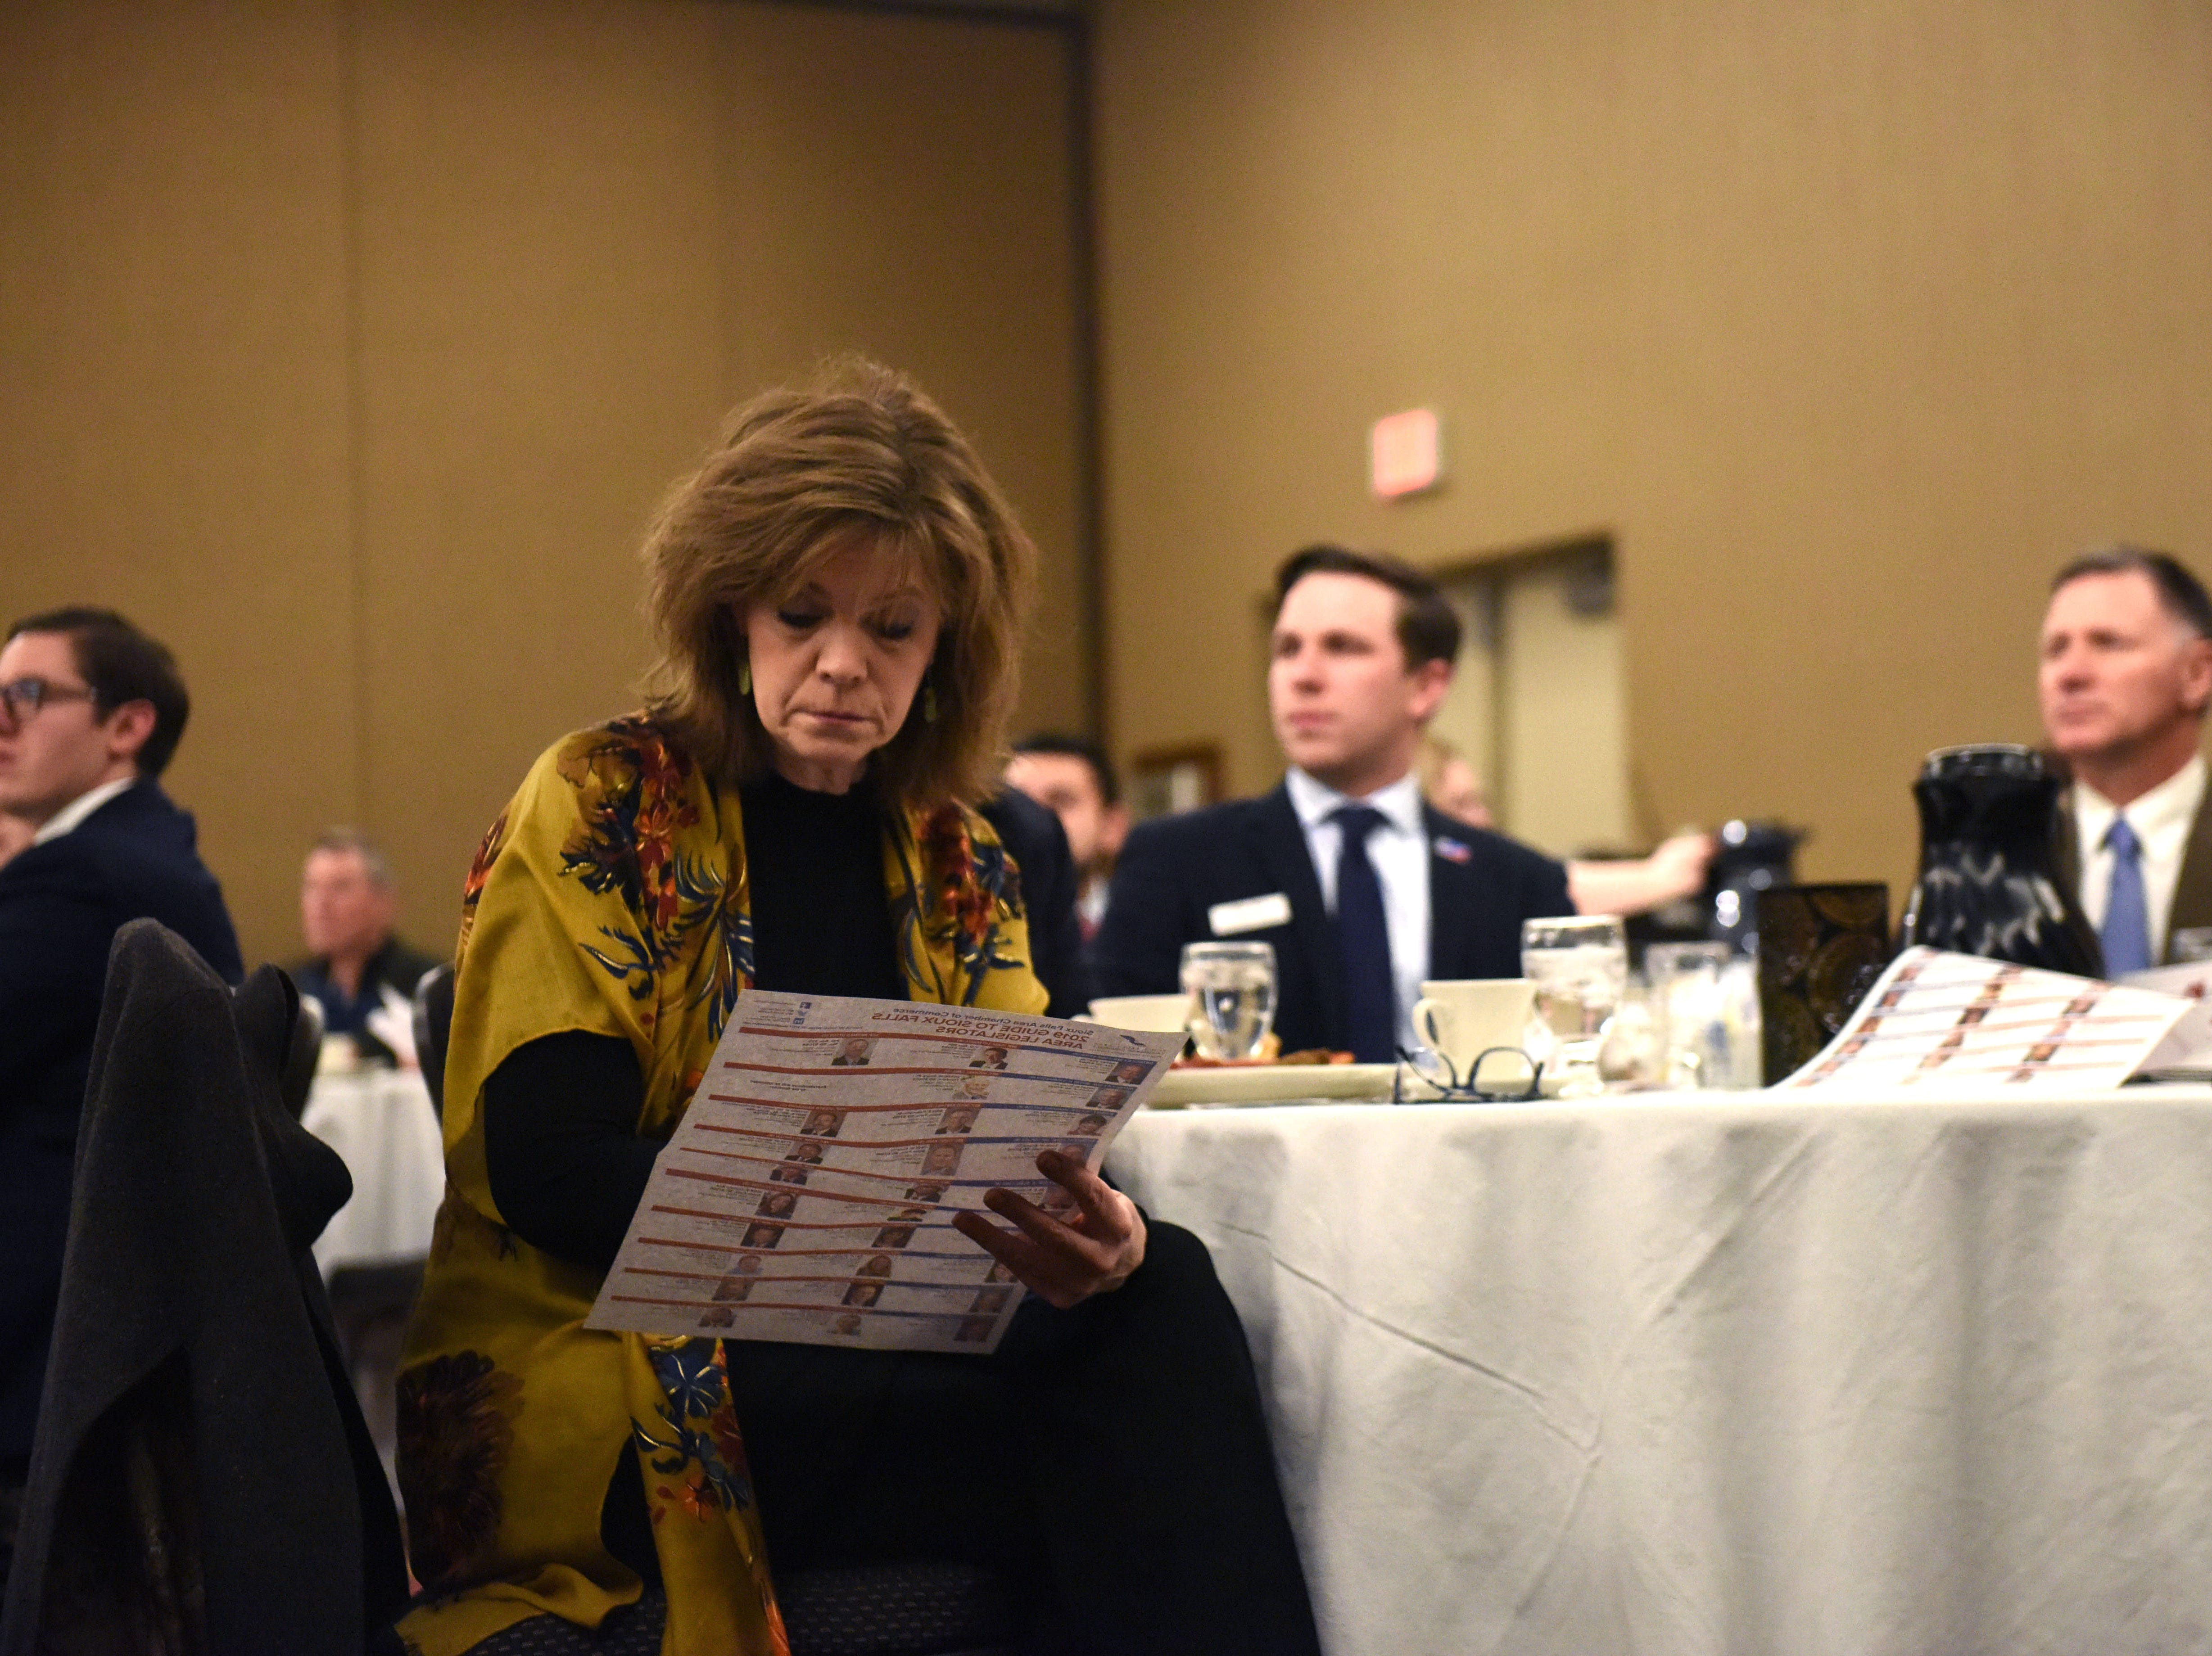 Attendee looks over the Sioux Falls legislators guide at the Chamber of Commerce legislative breakfast, Thursday, Jan. 3, 2019 at the Best Western Plus Ramkota Hotel in Sioux Falls, S.D.